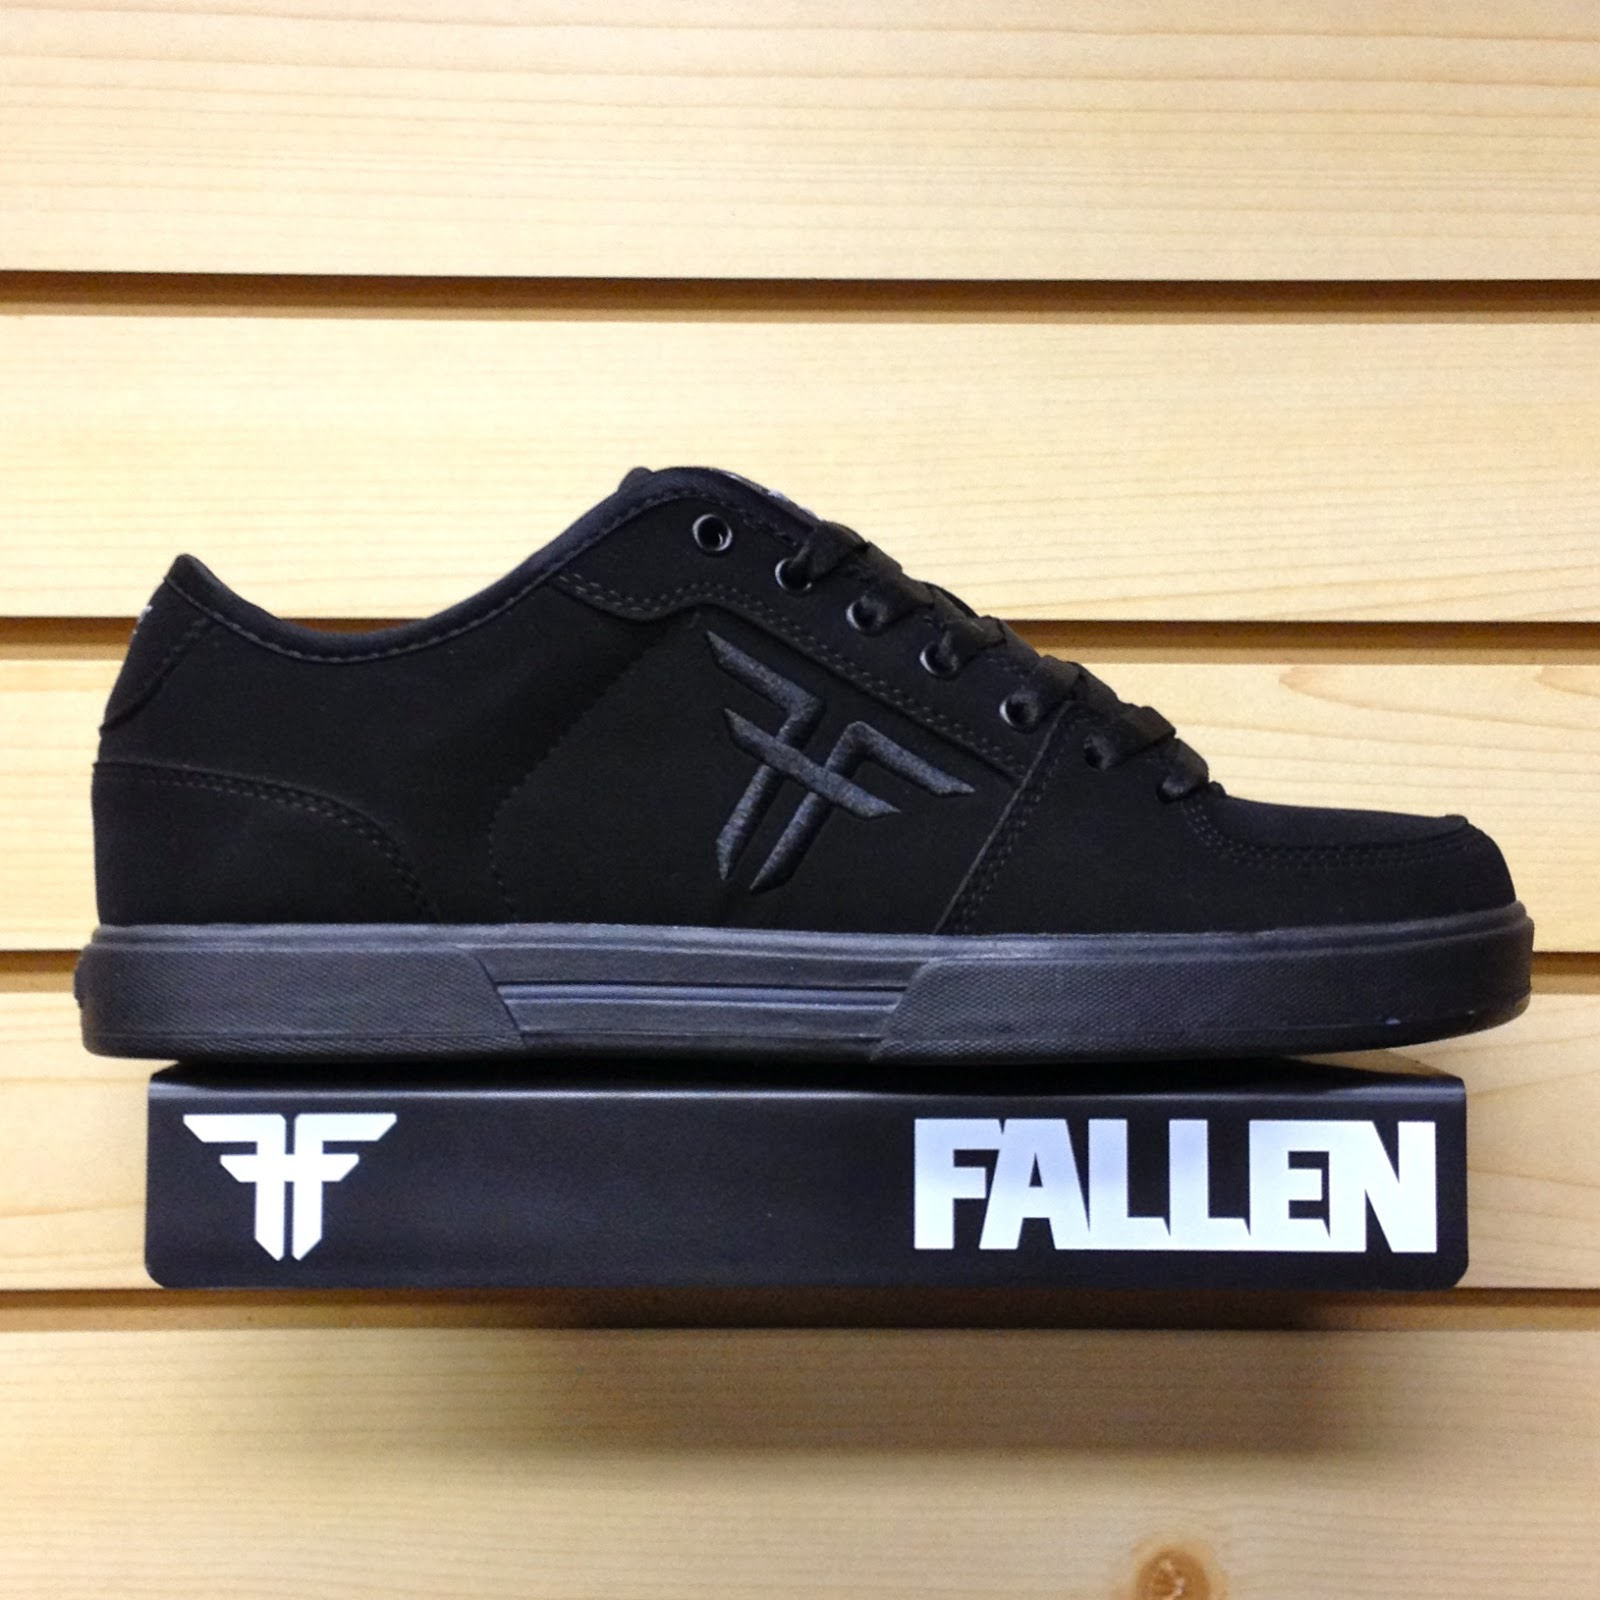 Fallen is a company owned by a professional skateboarder, and Fallen Skate Shoes are made for the serious skater who wants to look good. The shoes come with a reinforced Ollie zone for serious protection, and the outstanding styles look anything but lame.